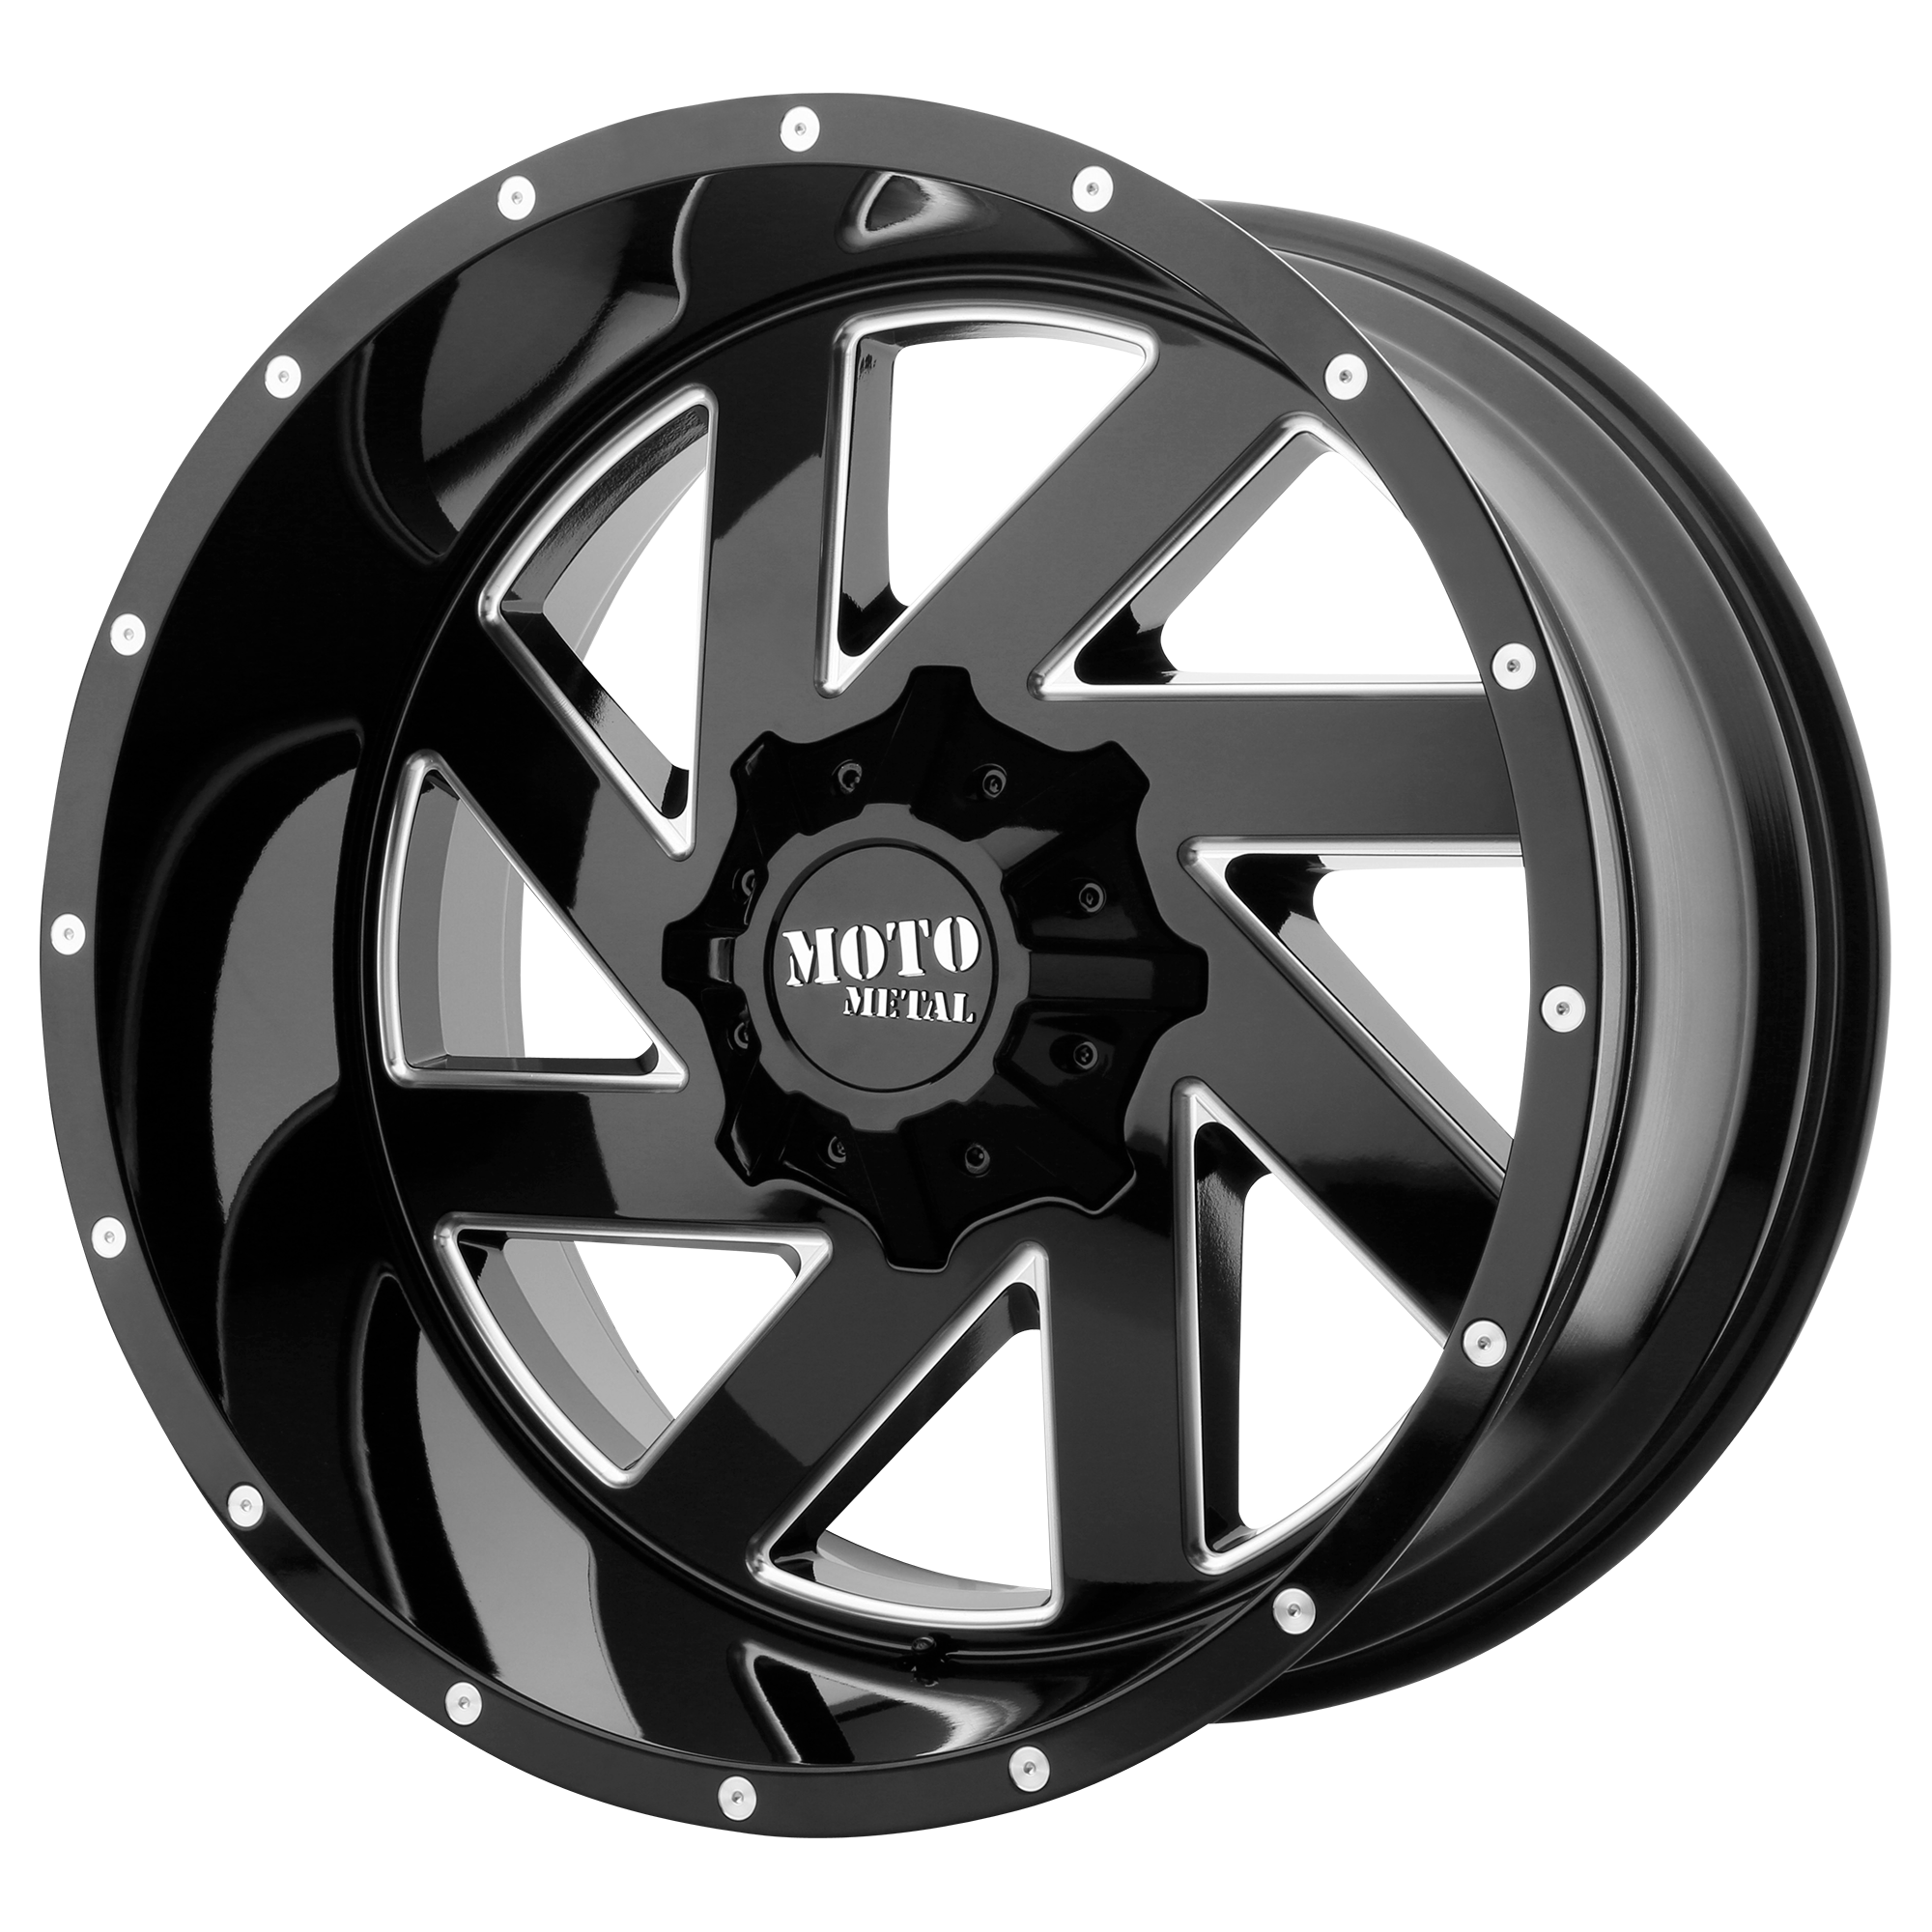 Moto Metal Offroad Wheels MELEE Gloss Black Milled